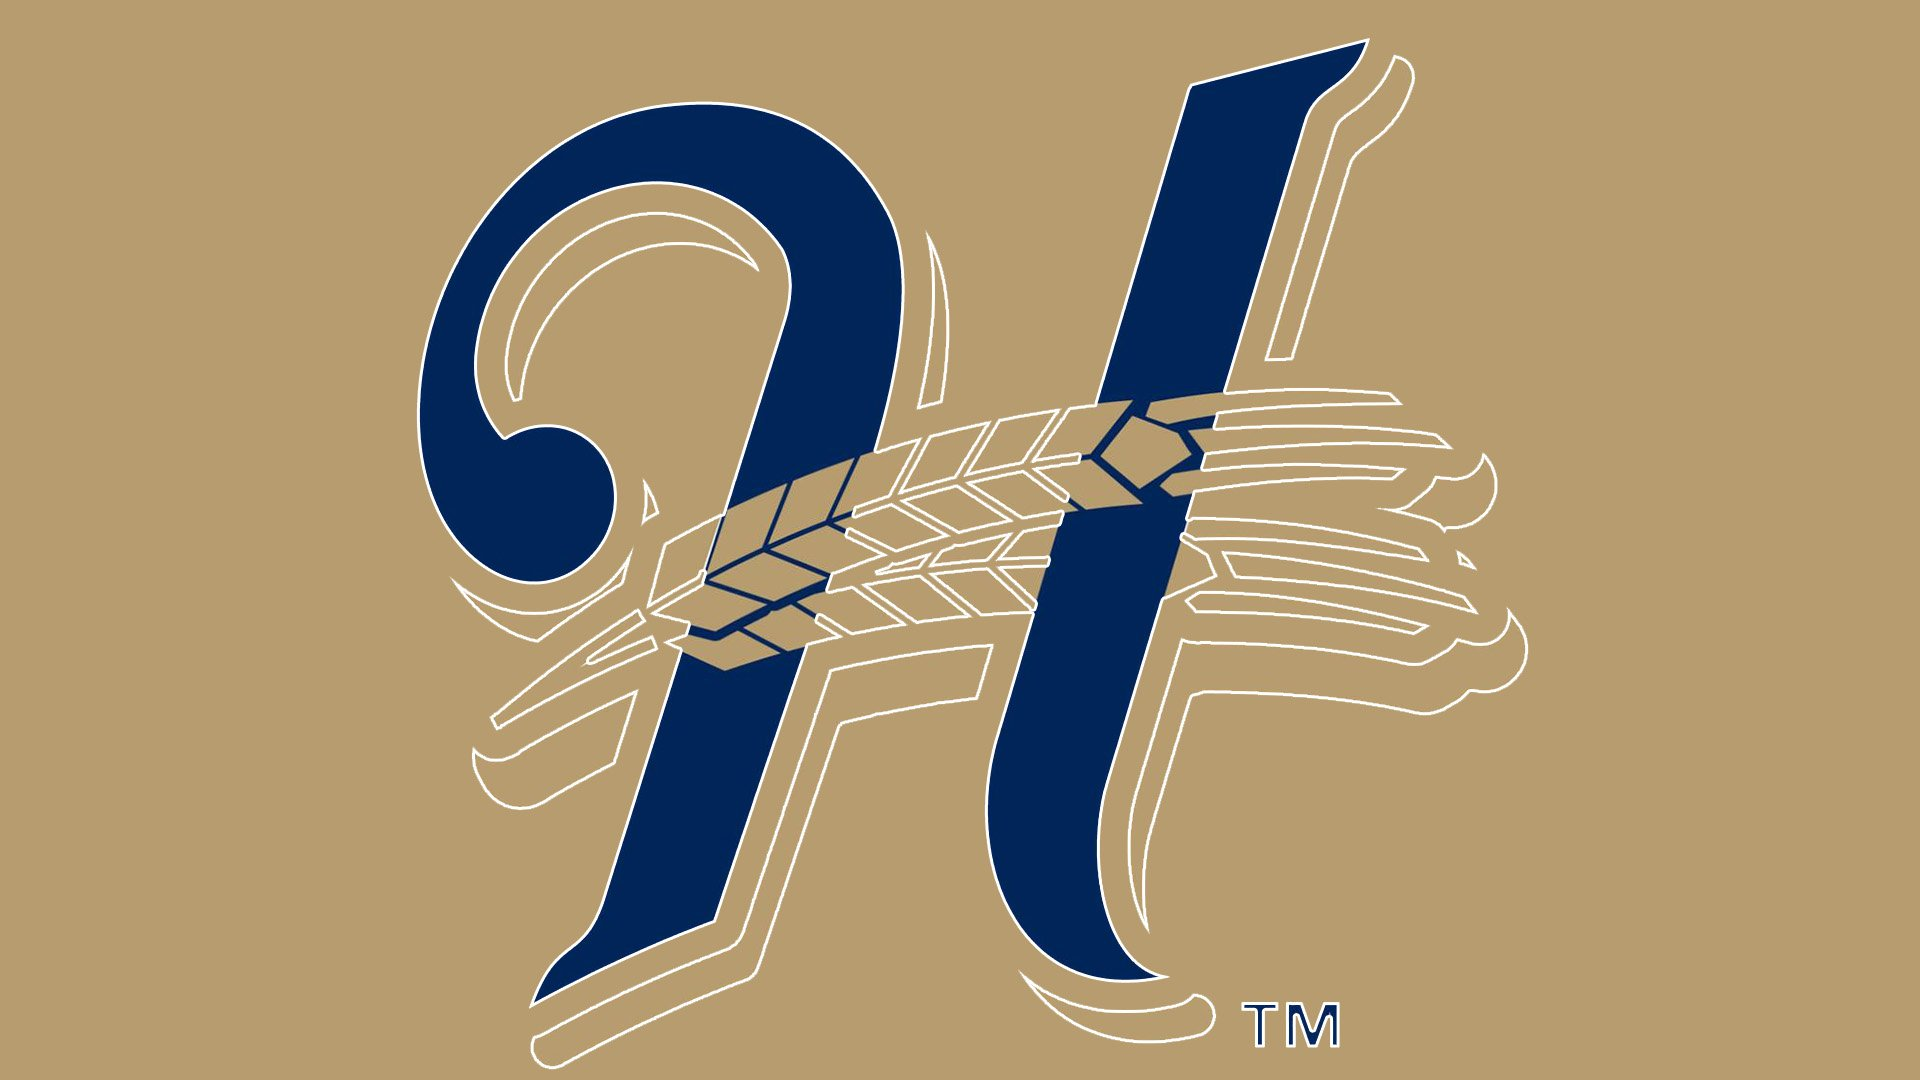 Helena Brewers logo and symbol, meaning, history, PNG